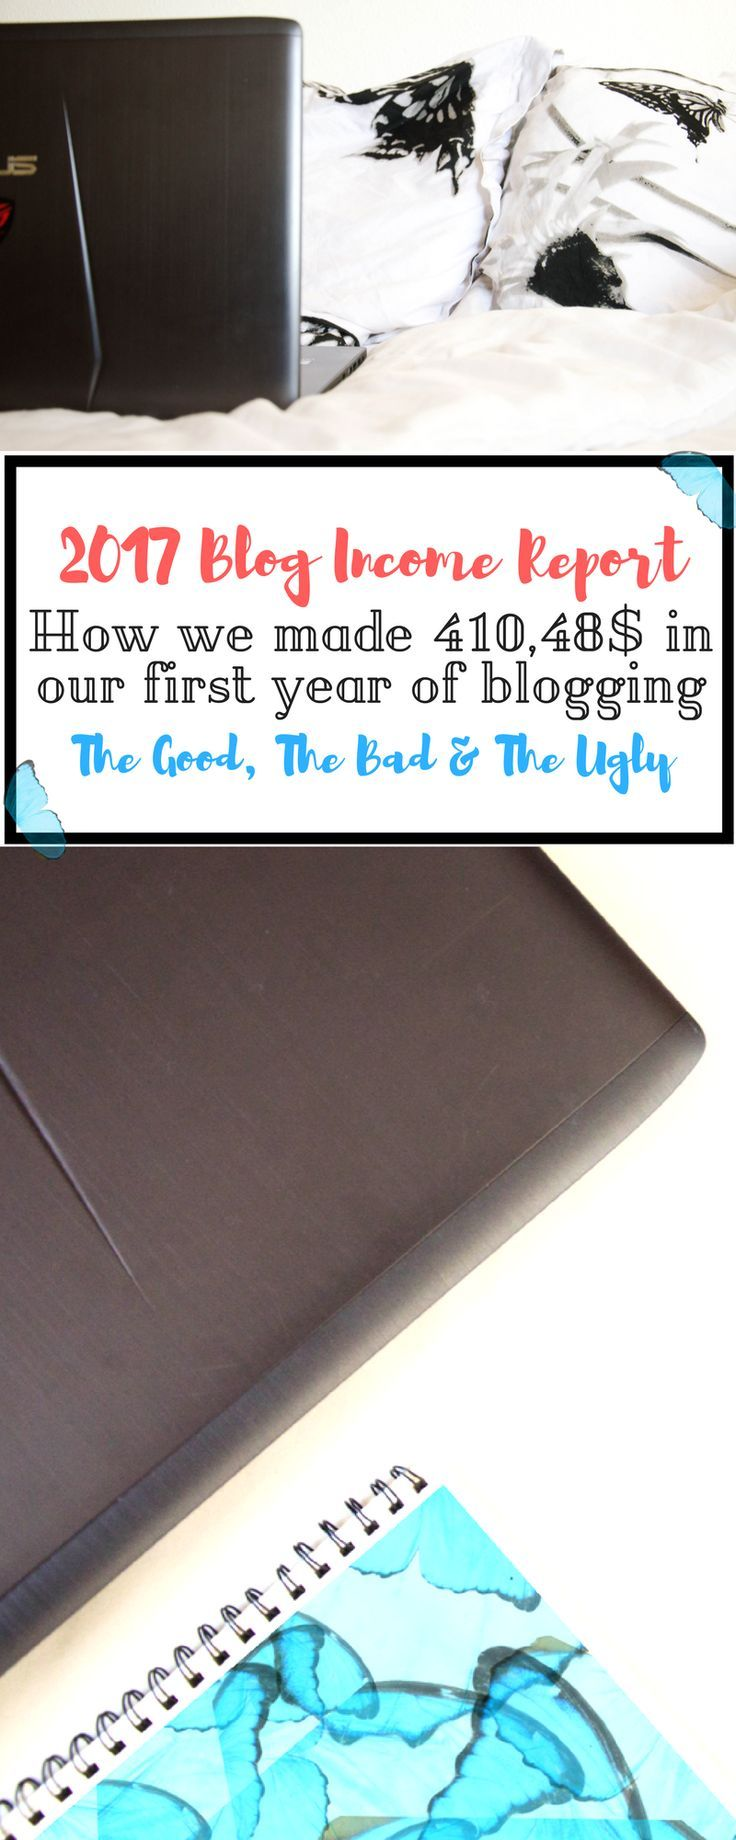 Over the last few months, we've shared with you our story of why we started and how we made money blogging. Today we want to share with you (with way too long overdue) the 2017 Blog Income Report, and we're sharing with you the changes that we've been through in the meantime, like always.